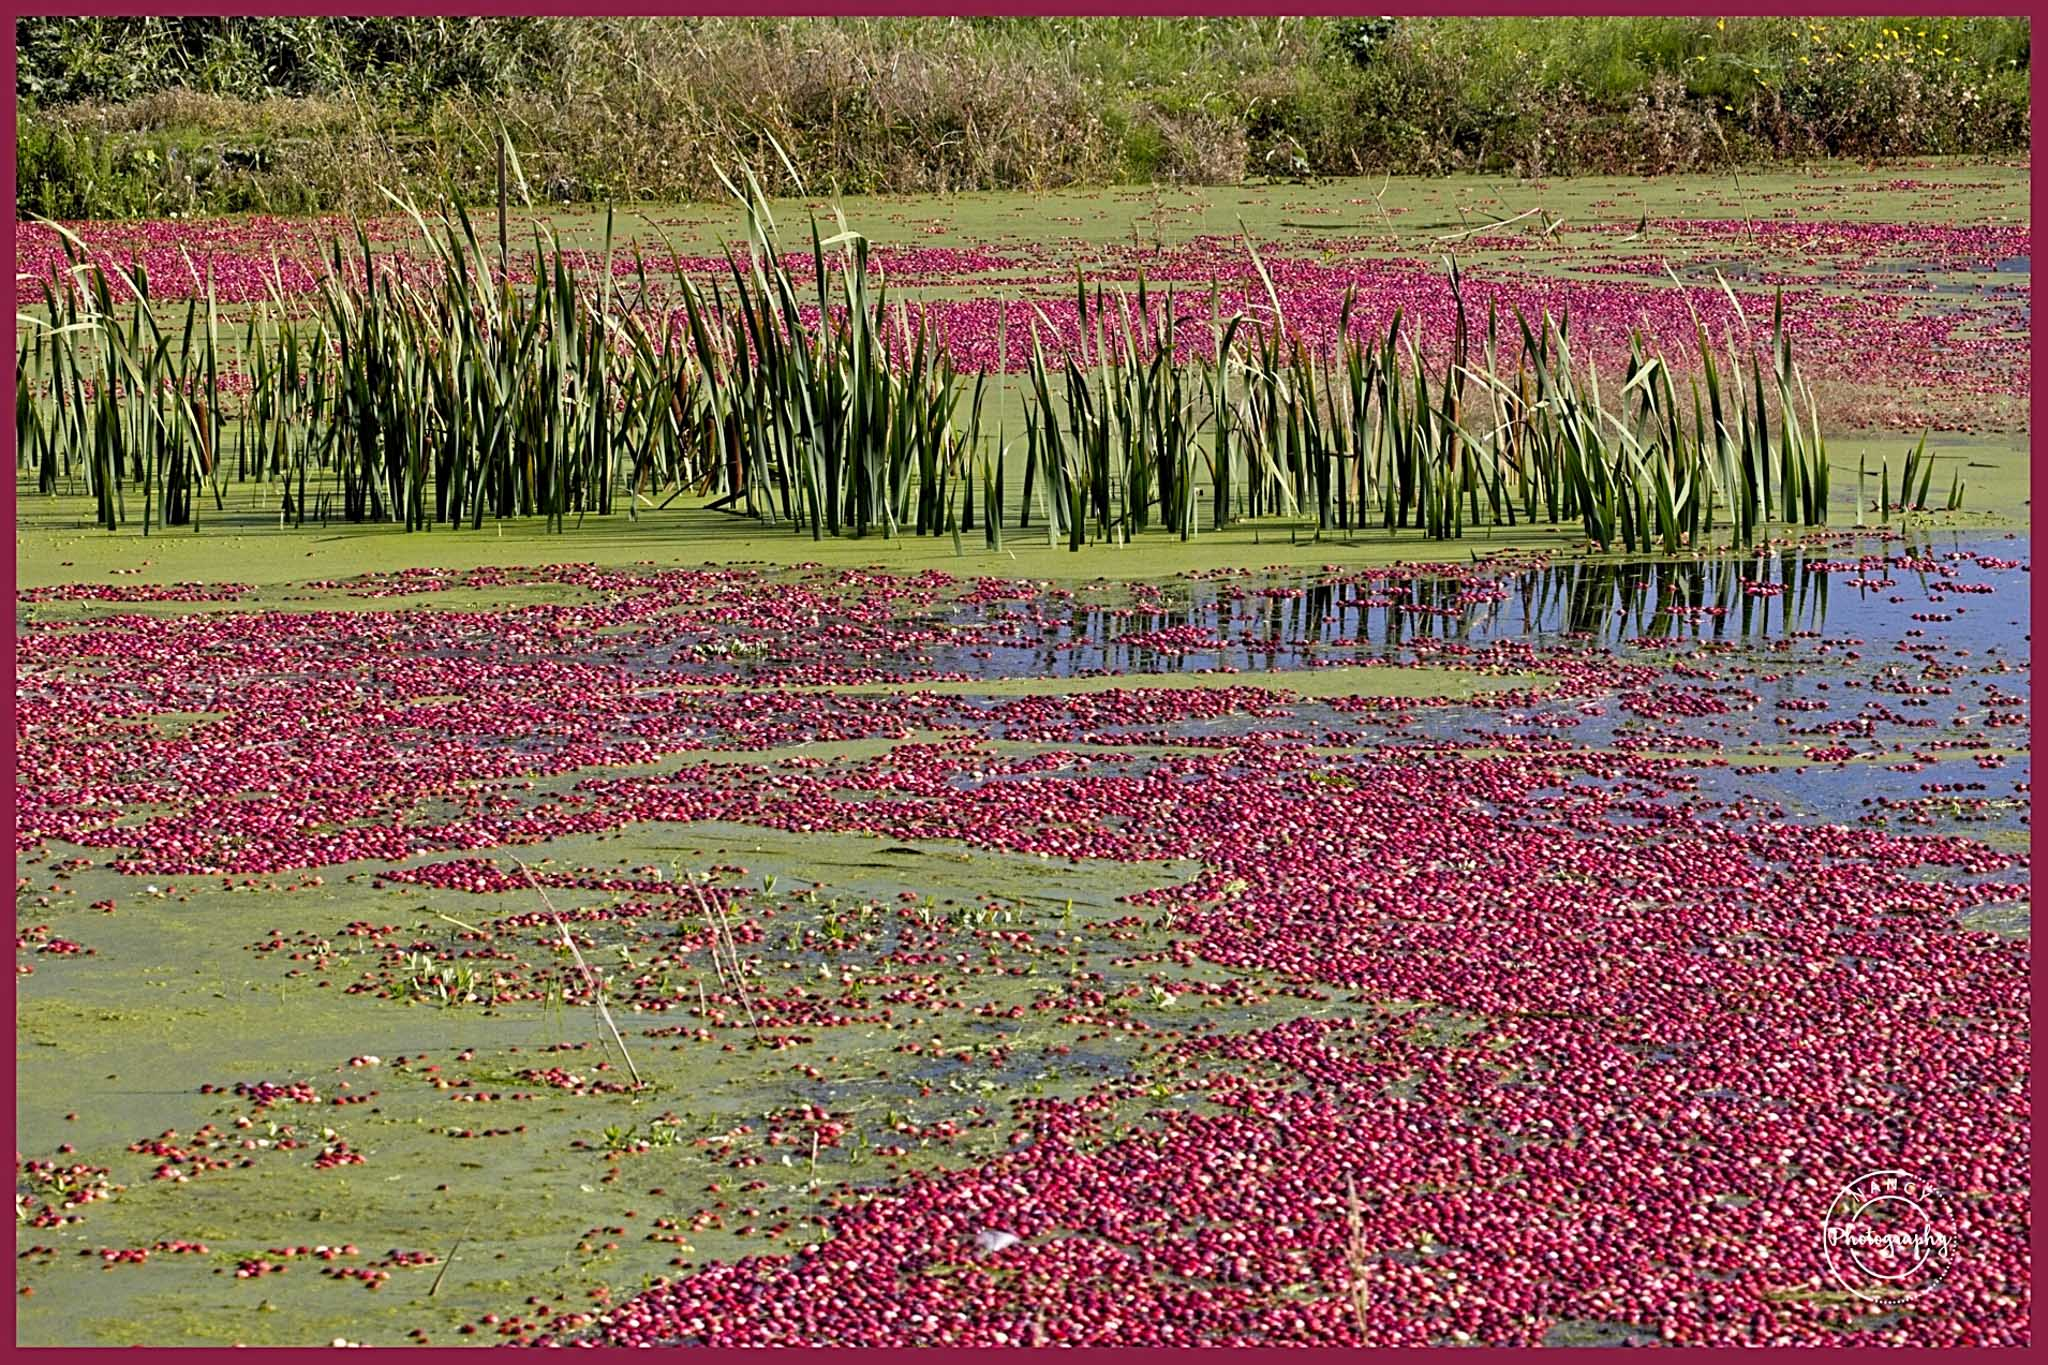 cranberry harvest - Nancy Cunningham